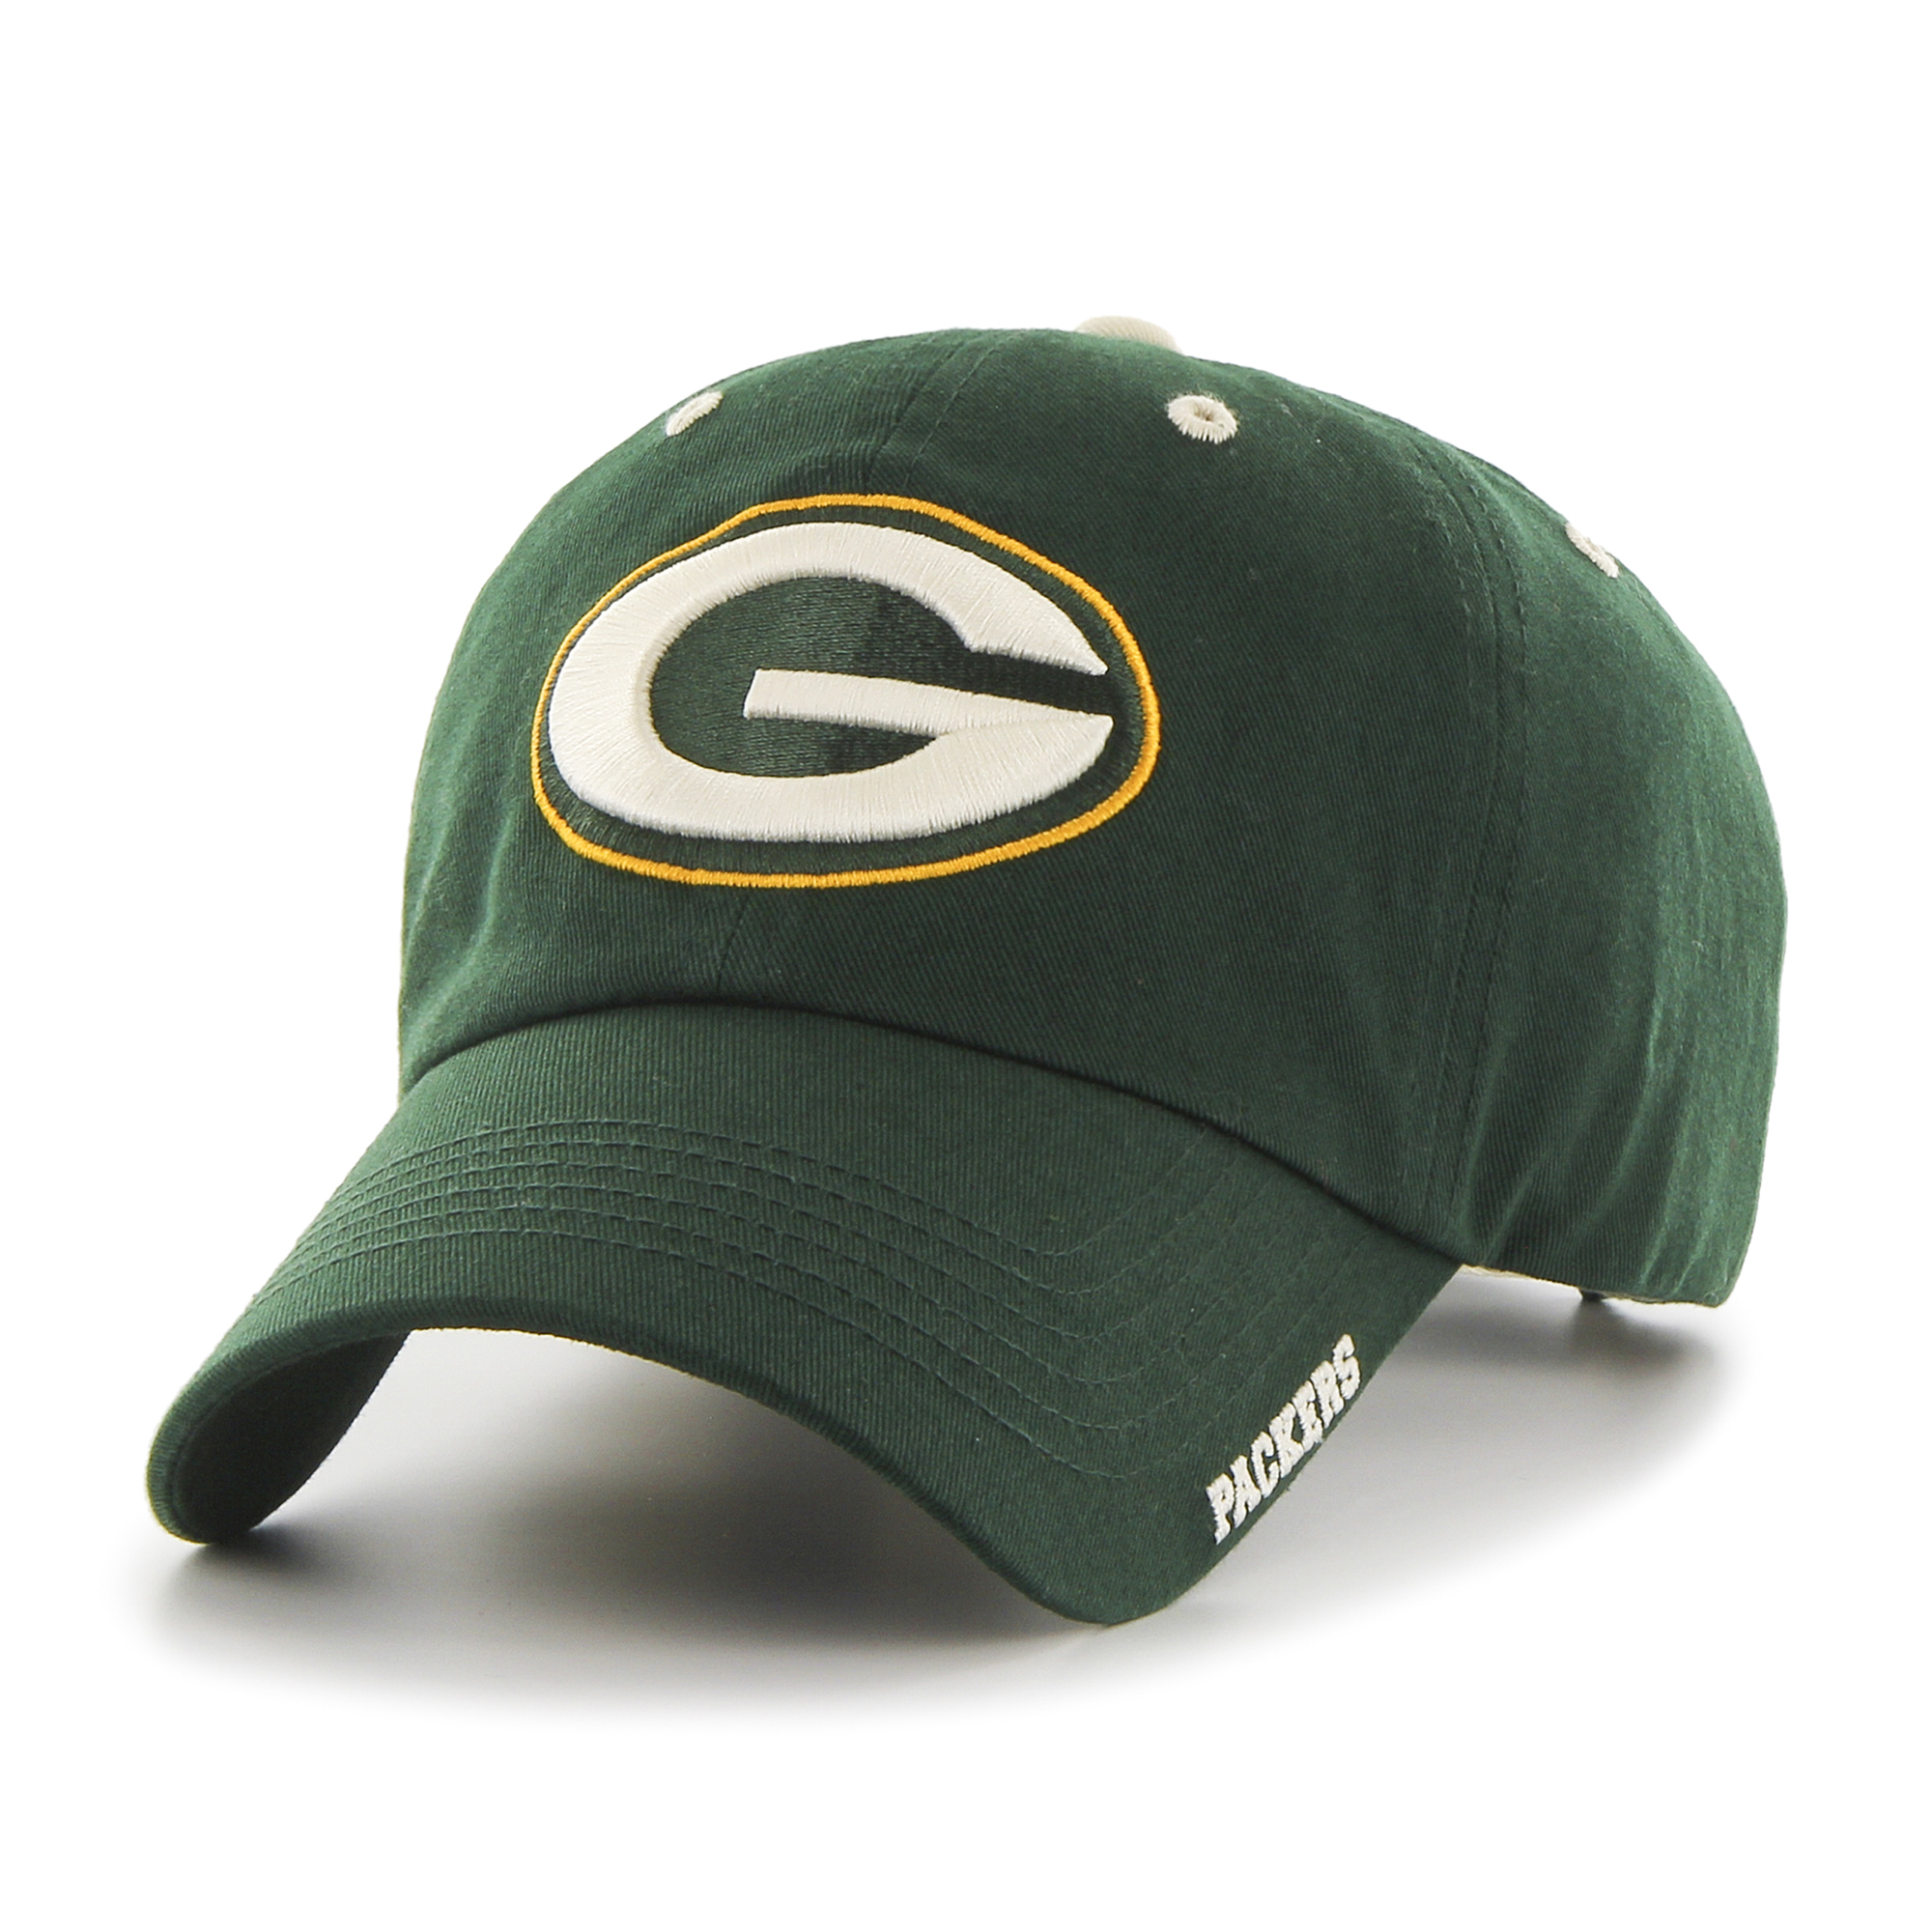 NFL Green Bay Packers Ice Adjustable Cap/Hat by Fan Favorite